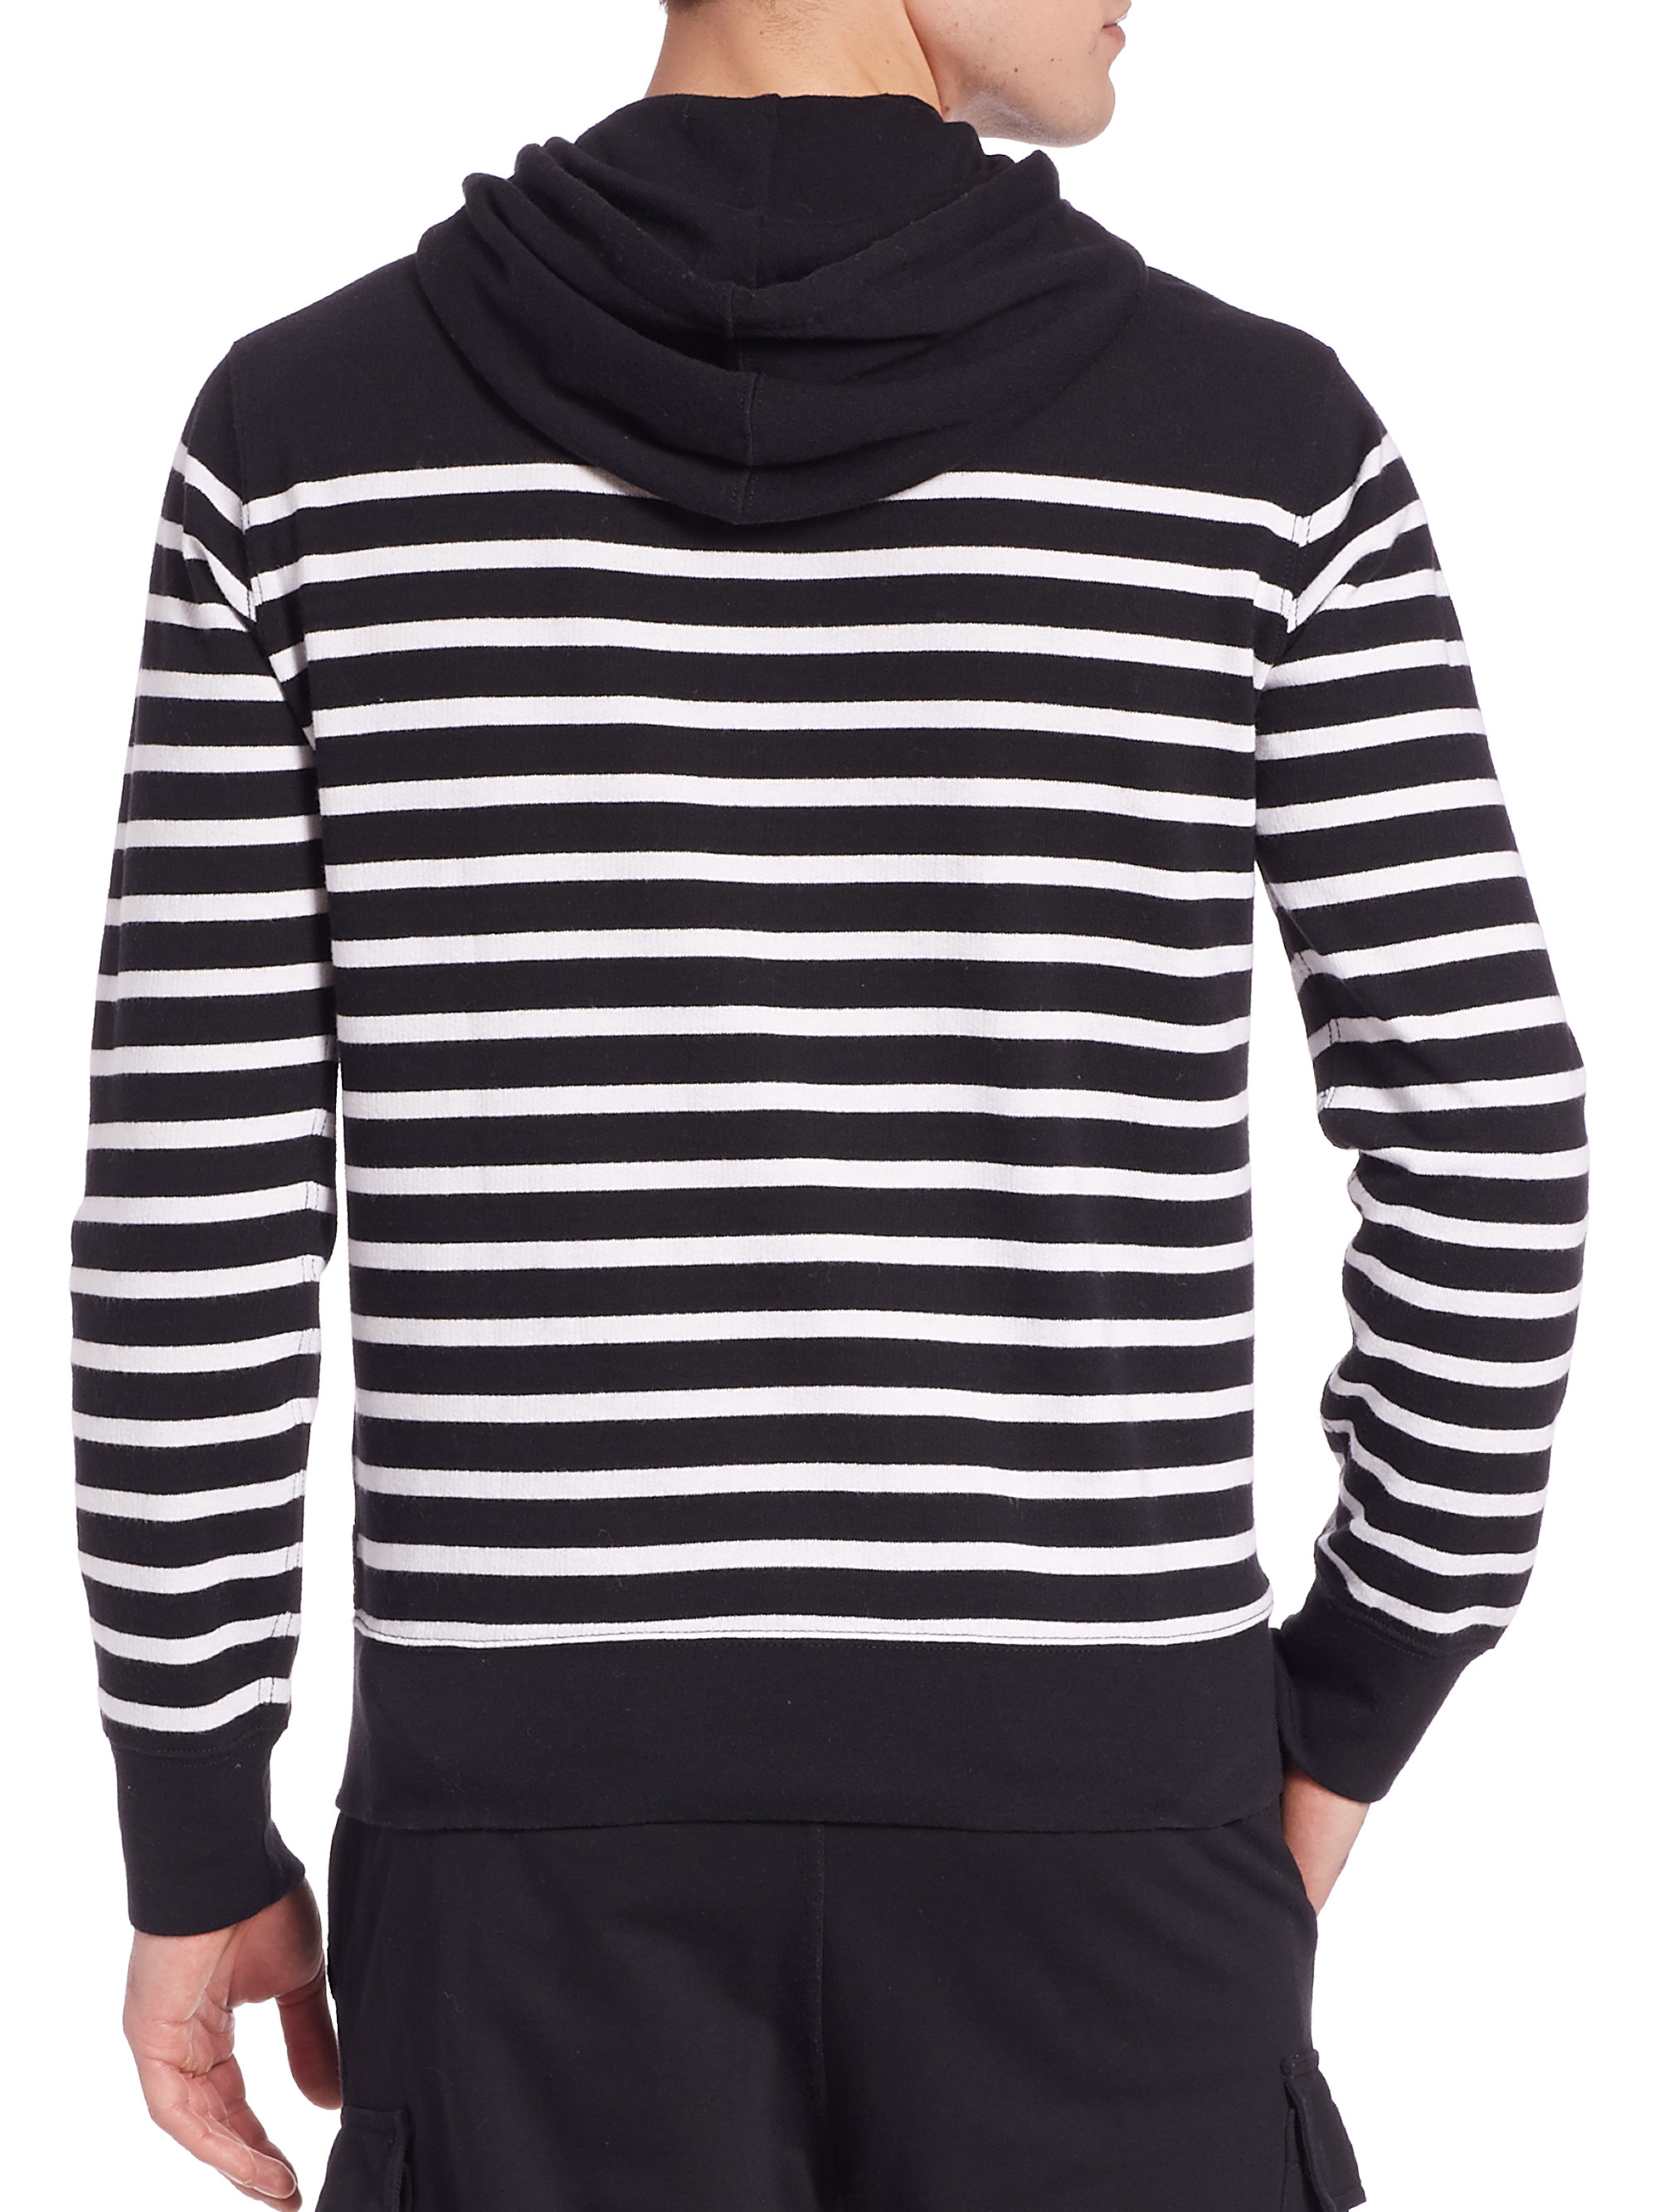 polo ralph lauren striped hooded sweatshirt in black for. Black Bedroom Furniture Sets. Home Design Ideas